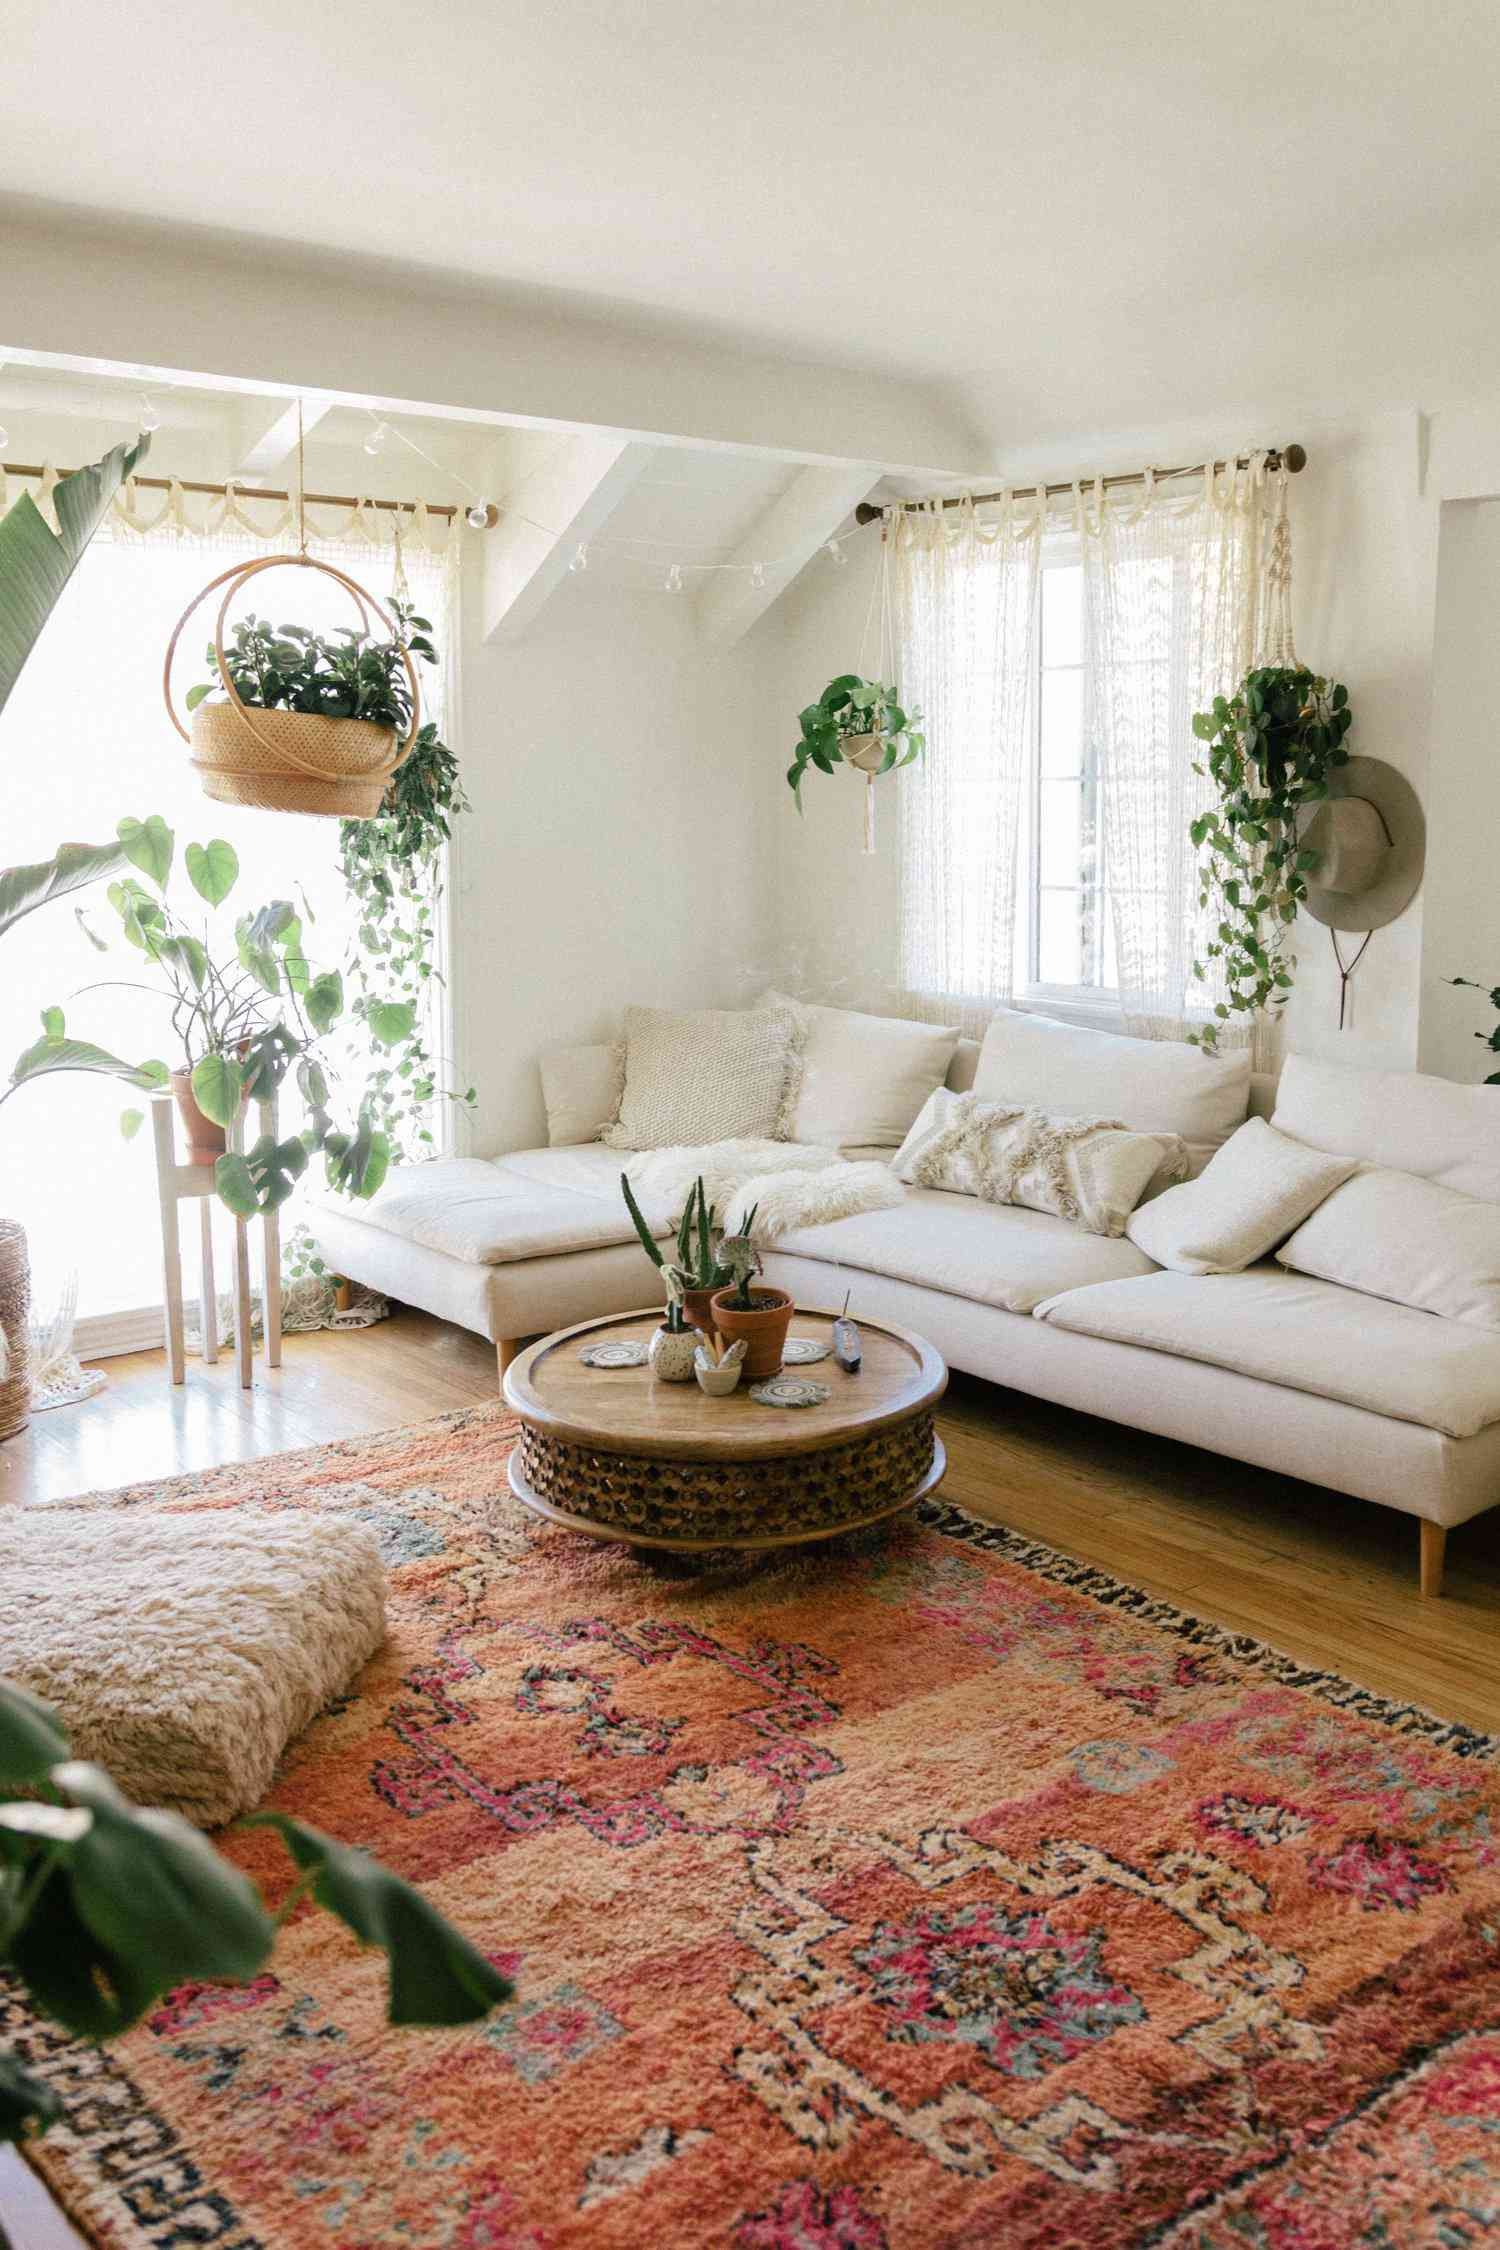 Living room with vintage patterned carpet, white couch, and hanging plants